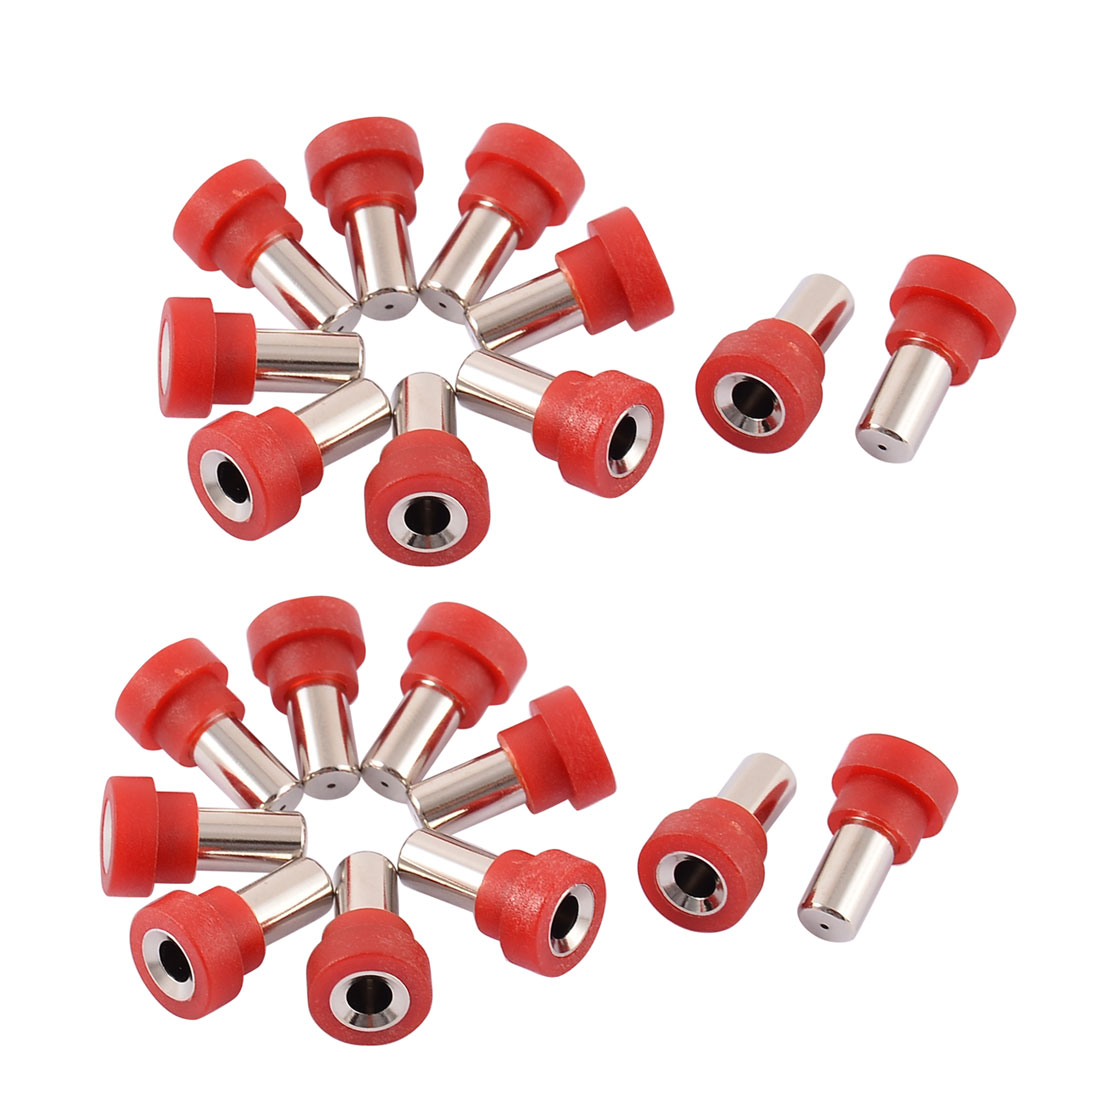 20pcs 4mm Red Banana Female Connector Socket Audio Speaker Cord Coupler Adapter for RC Airplane